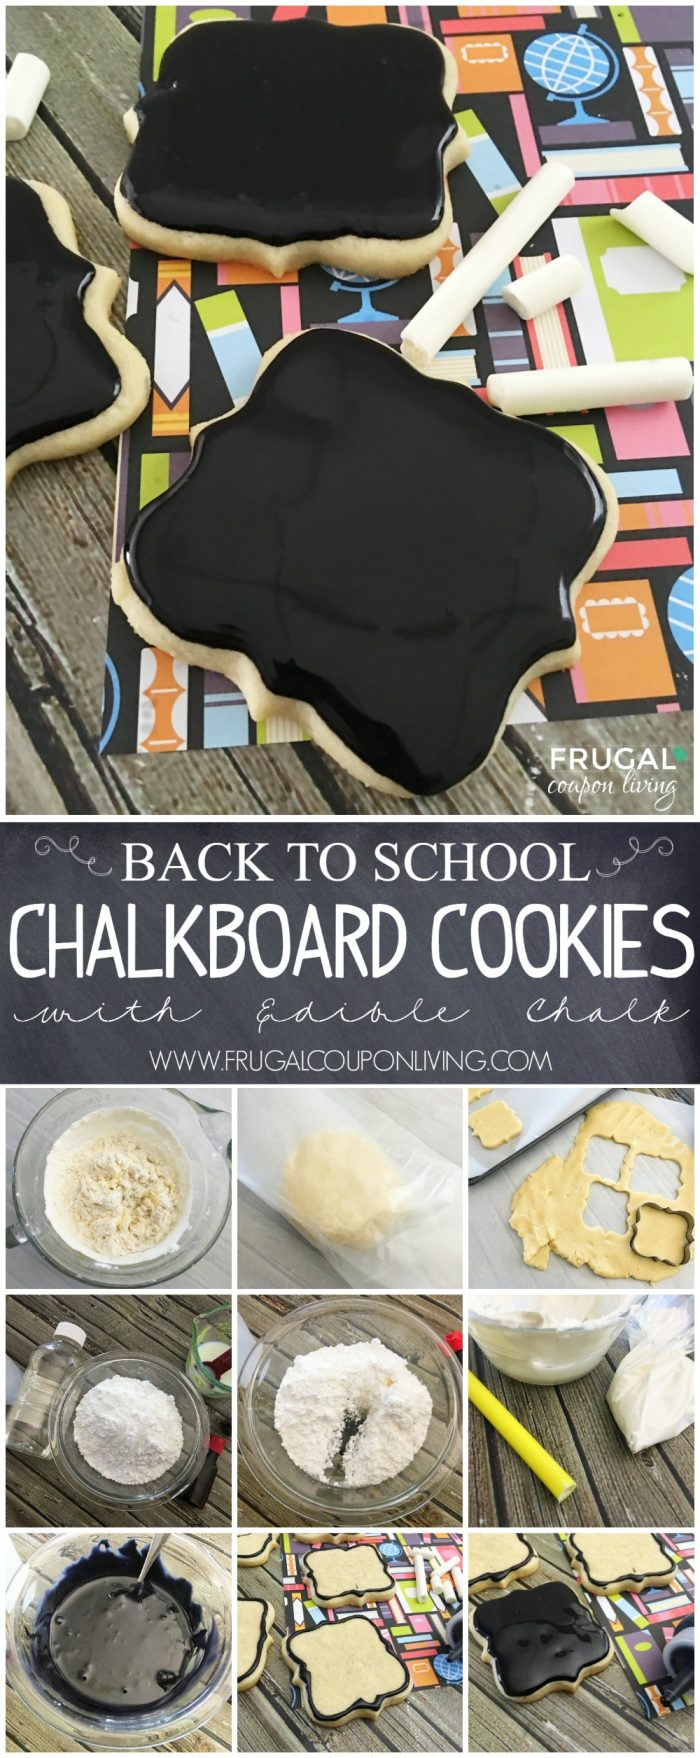 Chalkboard-cookies-frugal-coupon-living-long